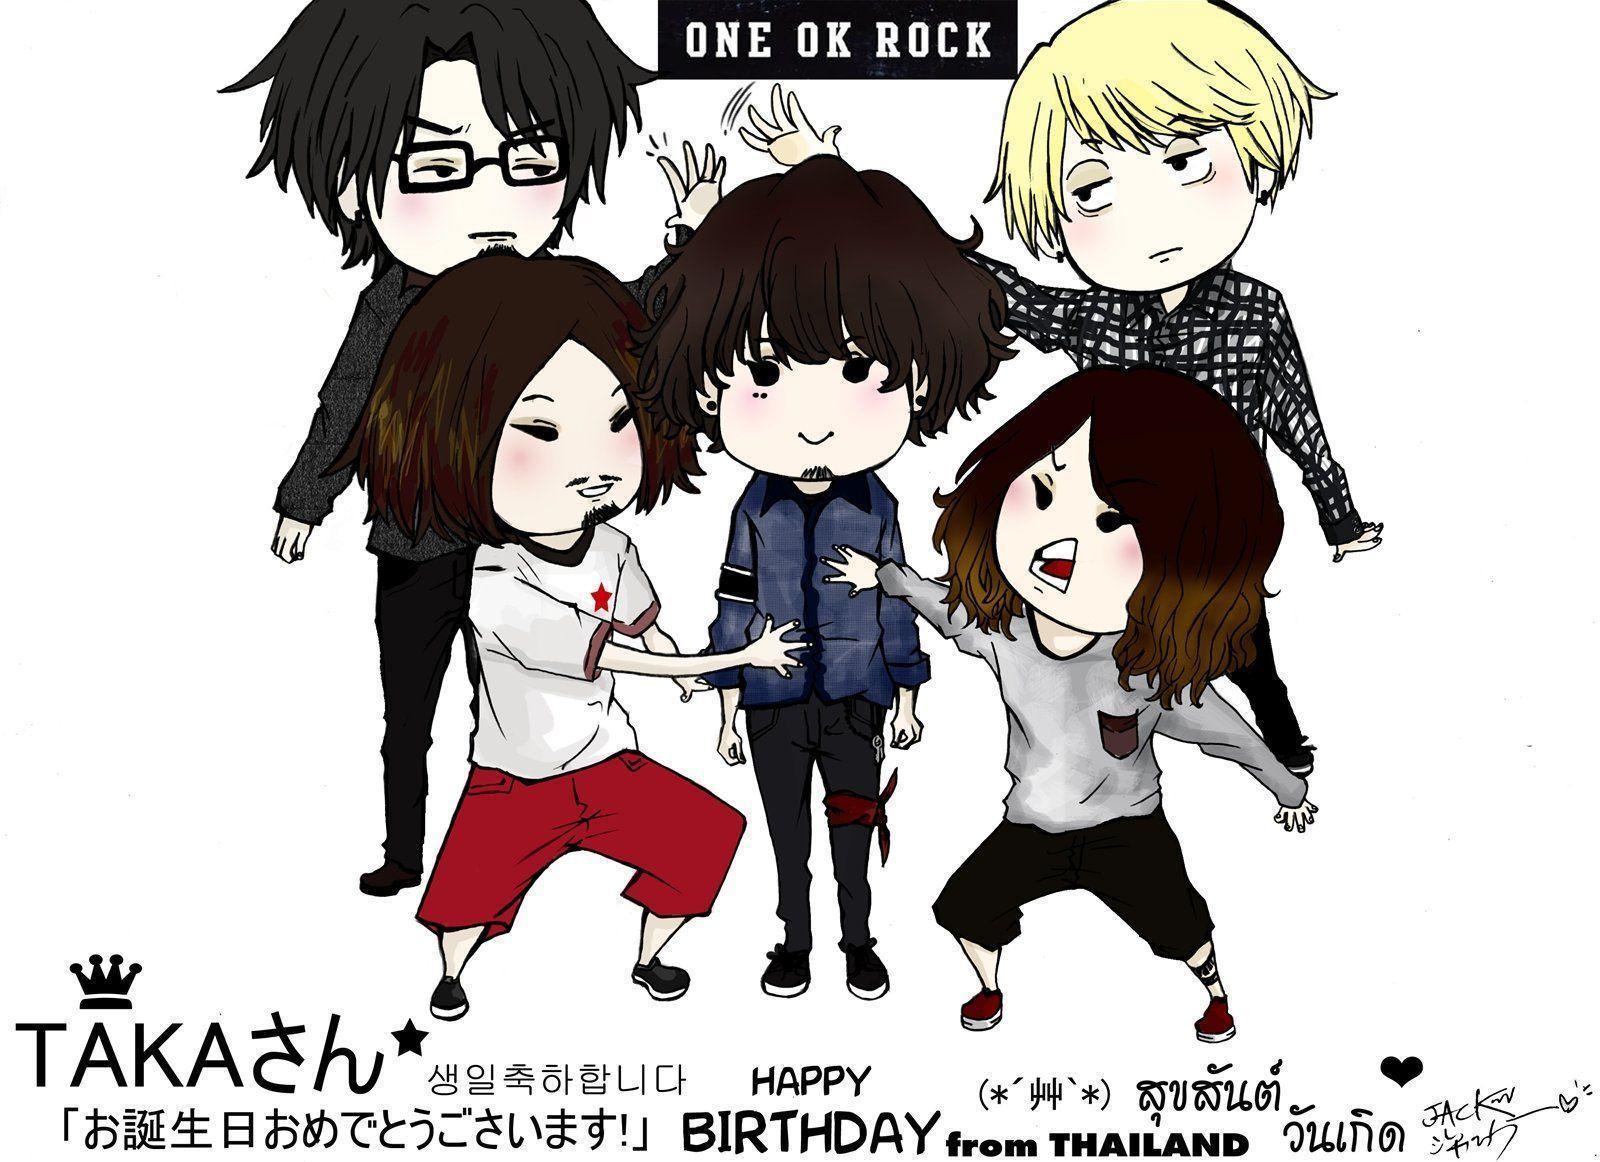 One Ok Rock favourites by Sora-no-Ryu-JG13 on DeviantArt